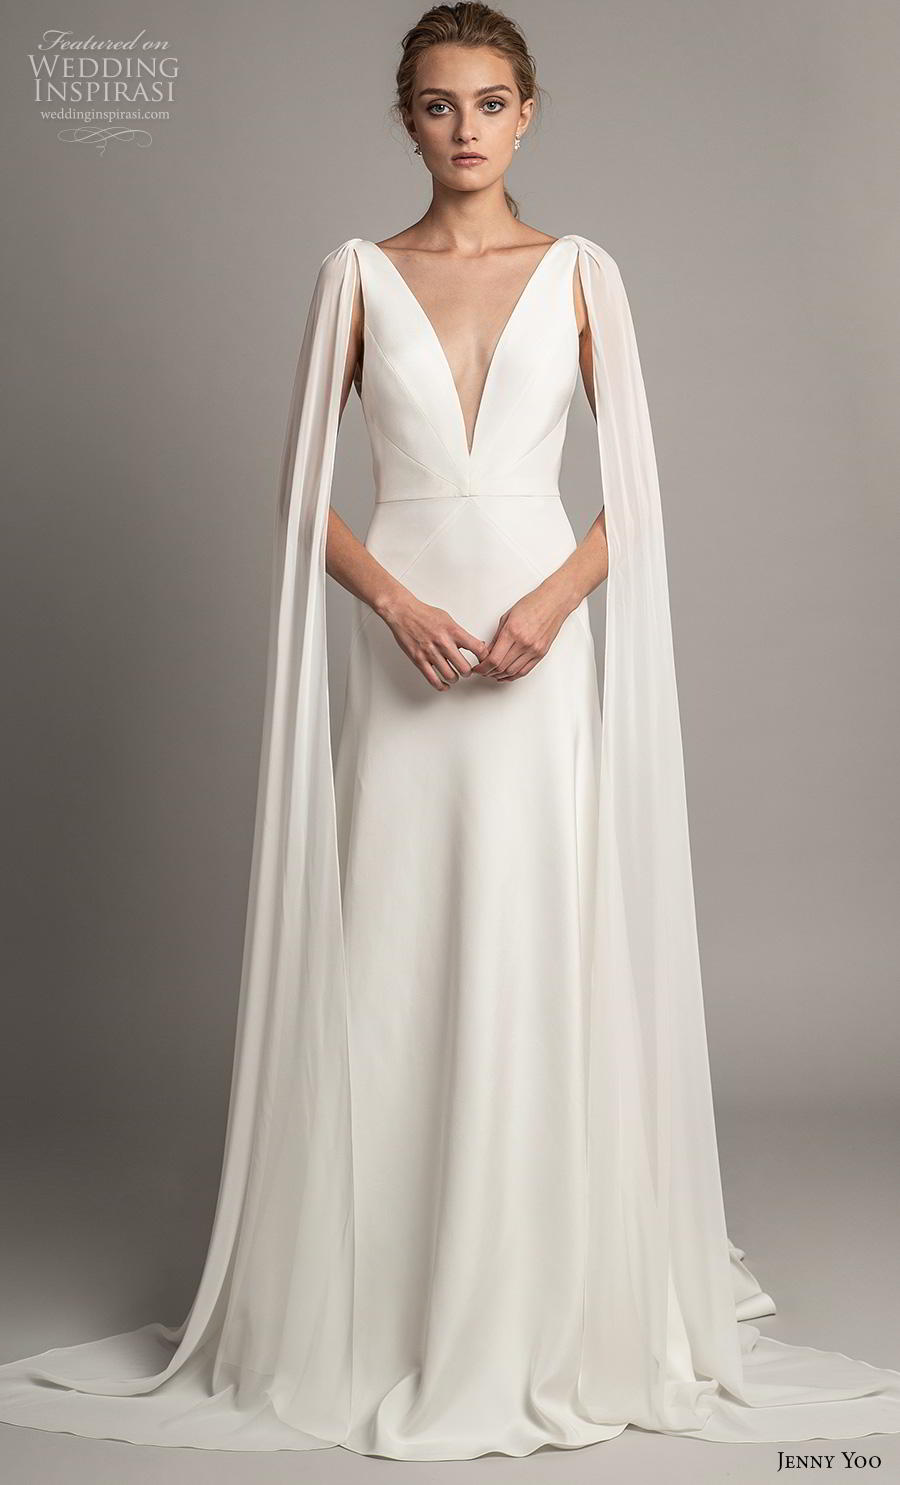 jenny yoo spring 2019 bridal long hanging sleeves deep v neck simple minimalist elegant clean look modified a  line wedding dress backless scoop back short train (1) mv